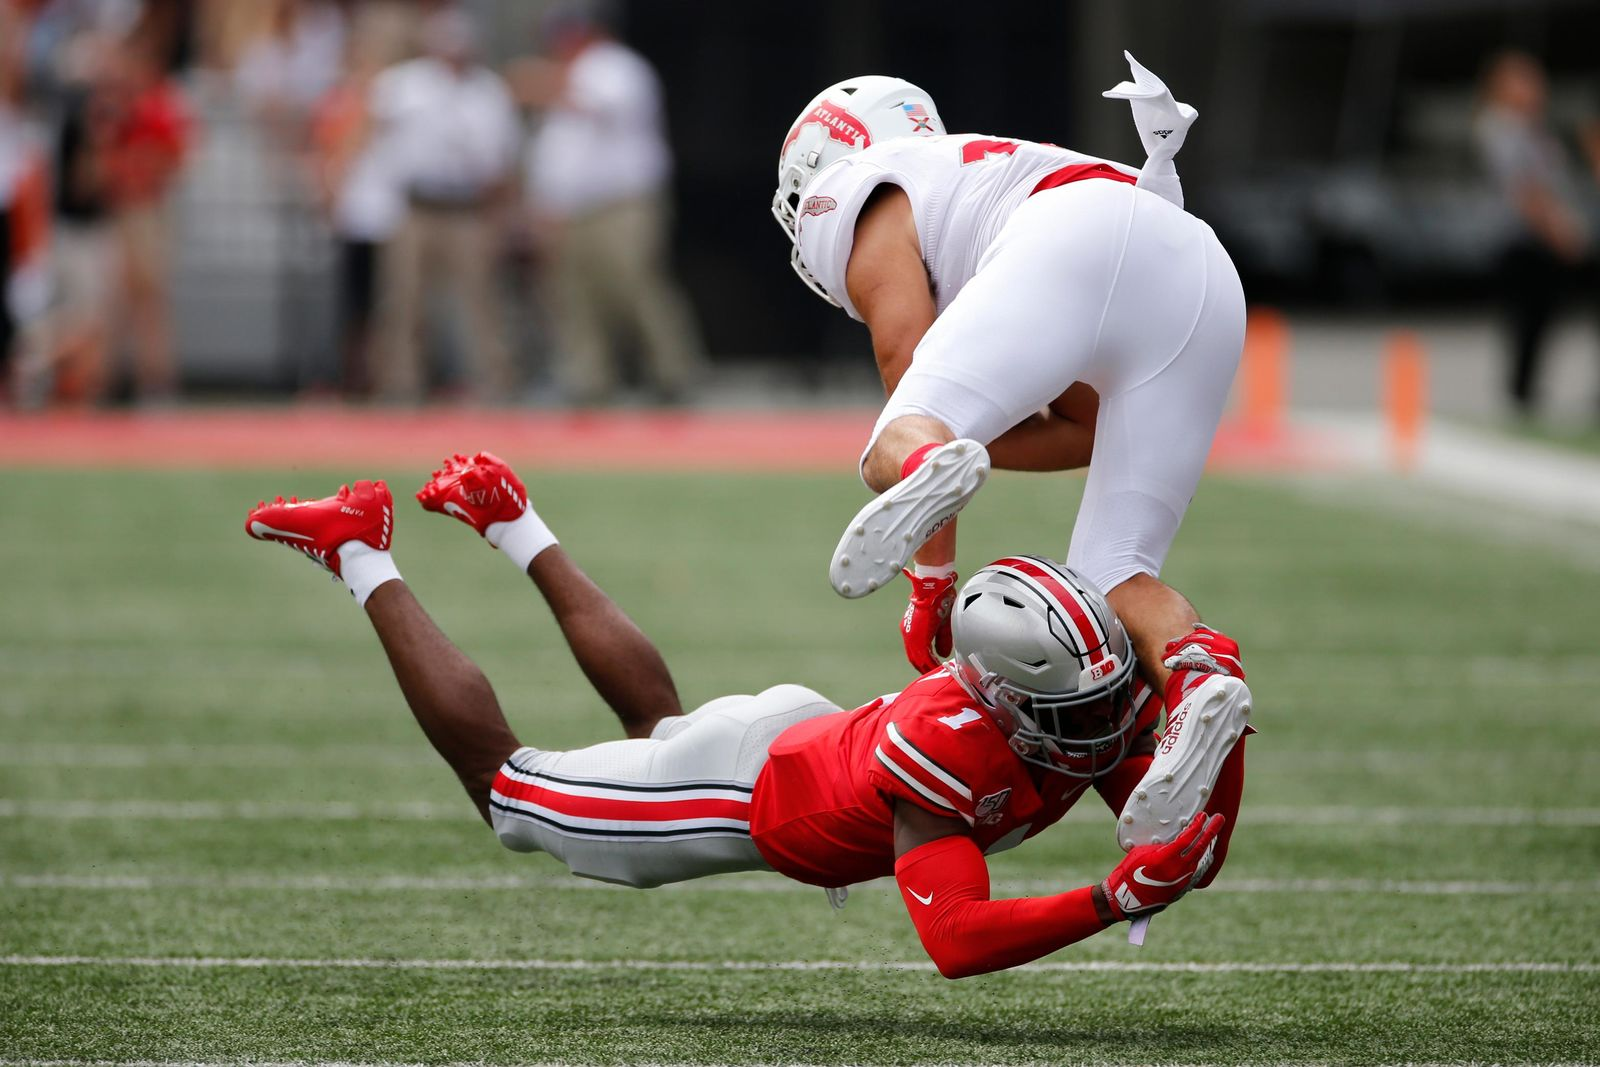 Ohio State defensive back Jeff Okudah, bottom, tackles Florida Atlantic tight end Harrison Bryant during the first half of an NCAA college football game Saturday, Aug. 31, 2019, in Columbus, Ohio. (AP Photo/Jay LaPrete)